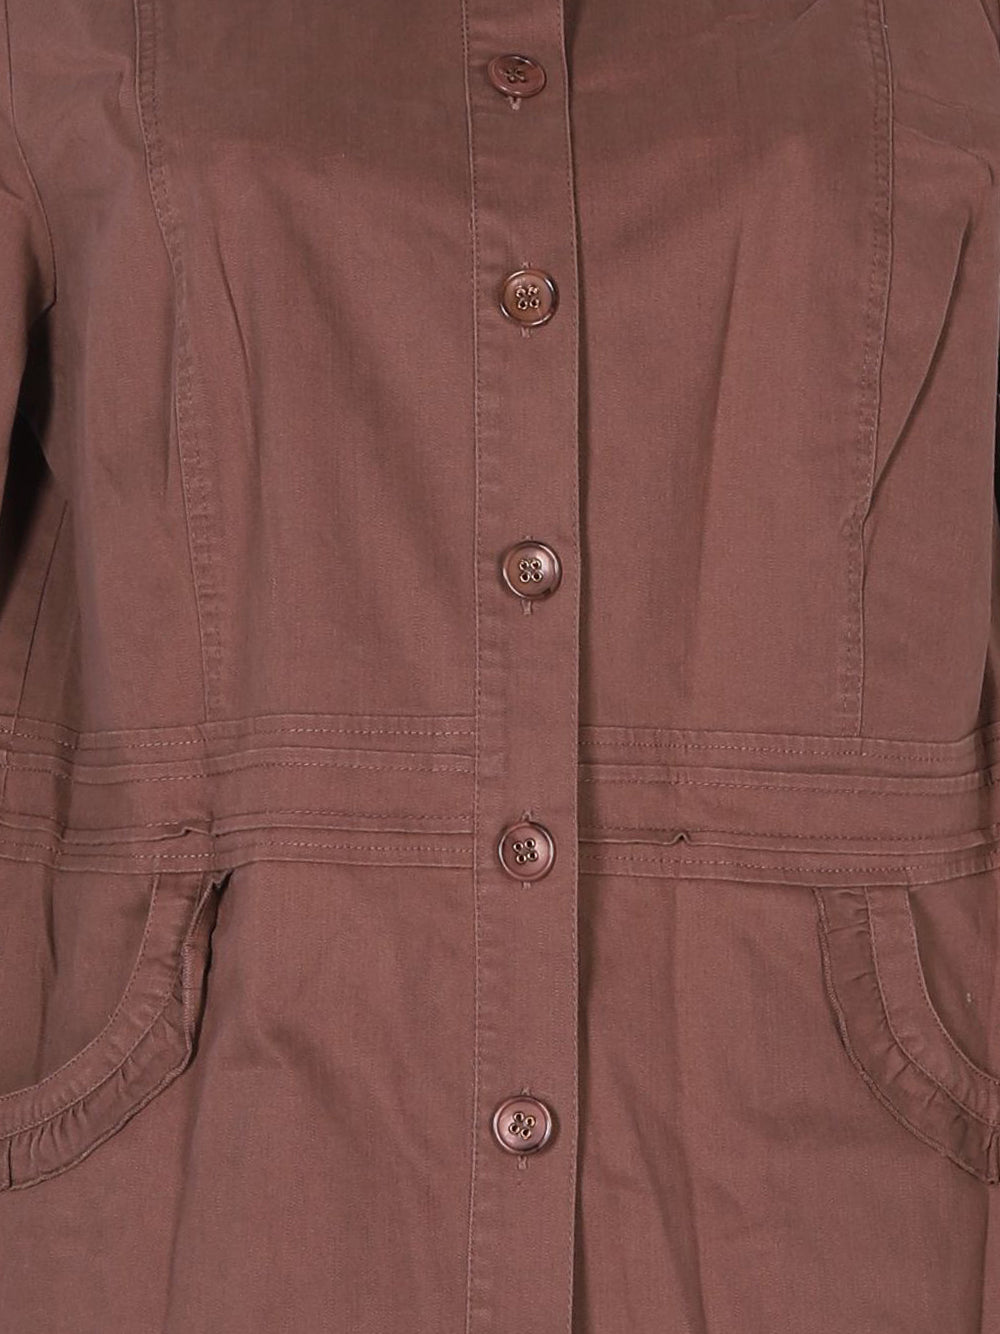 Detail photo of Preloved celaia Brown Woman's jacket - size 14/XL